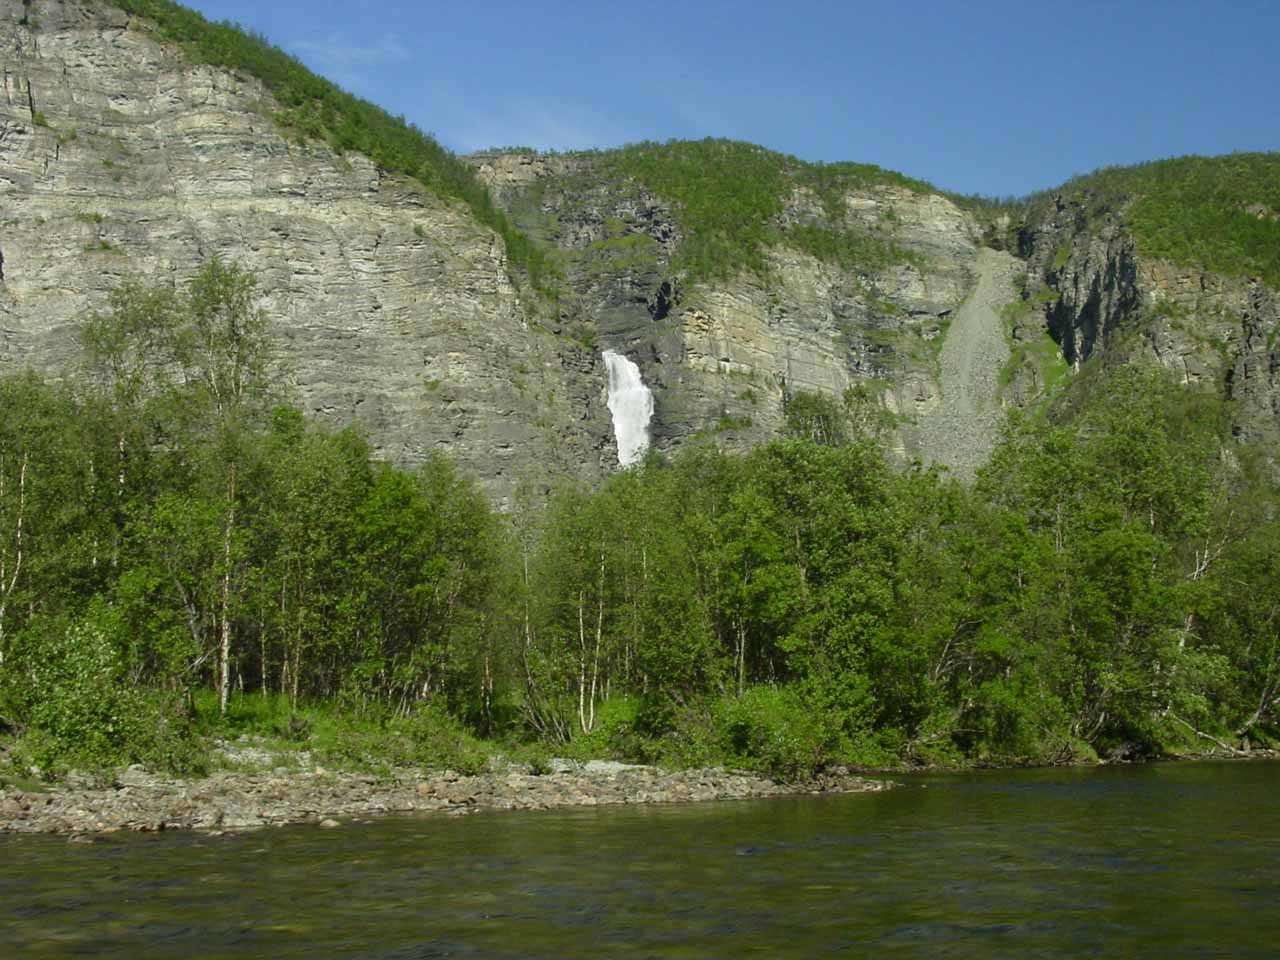 After the hypnotic boat ride, seeing Mollifossen definitely took us out of our trance